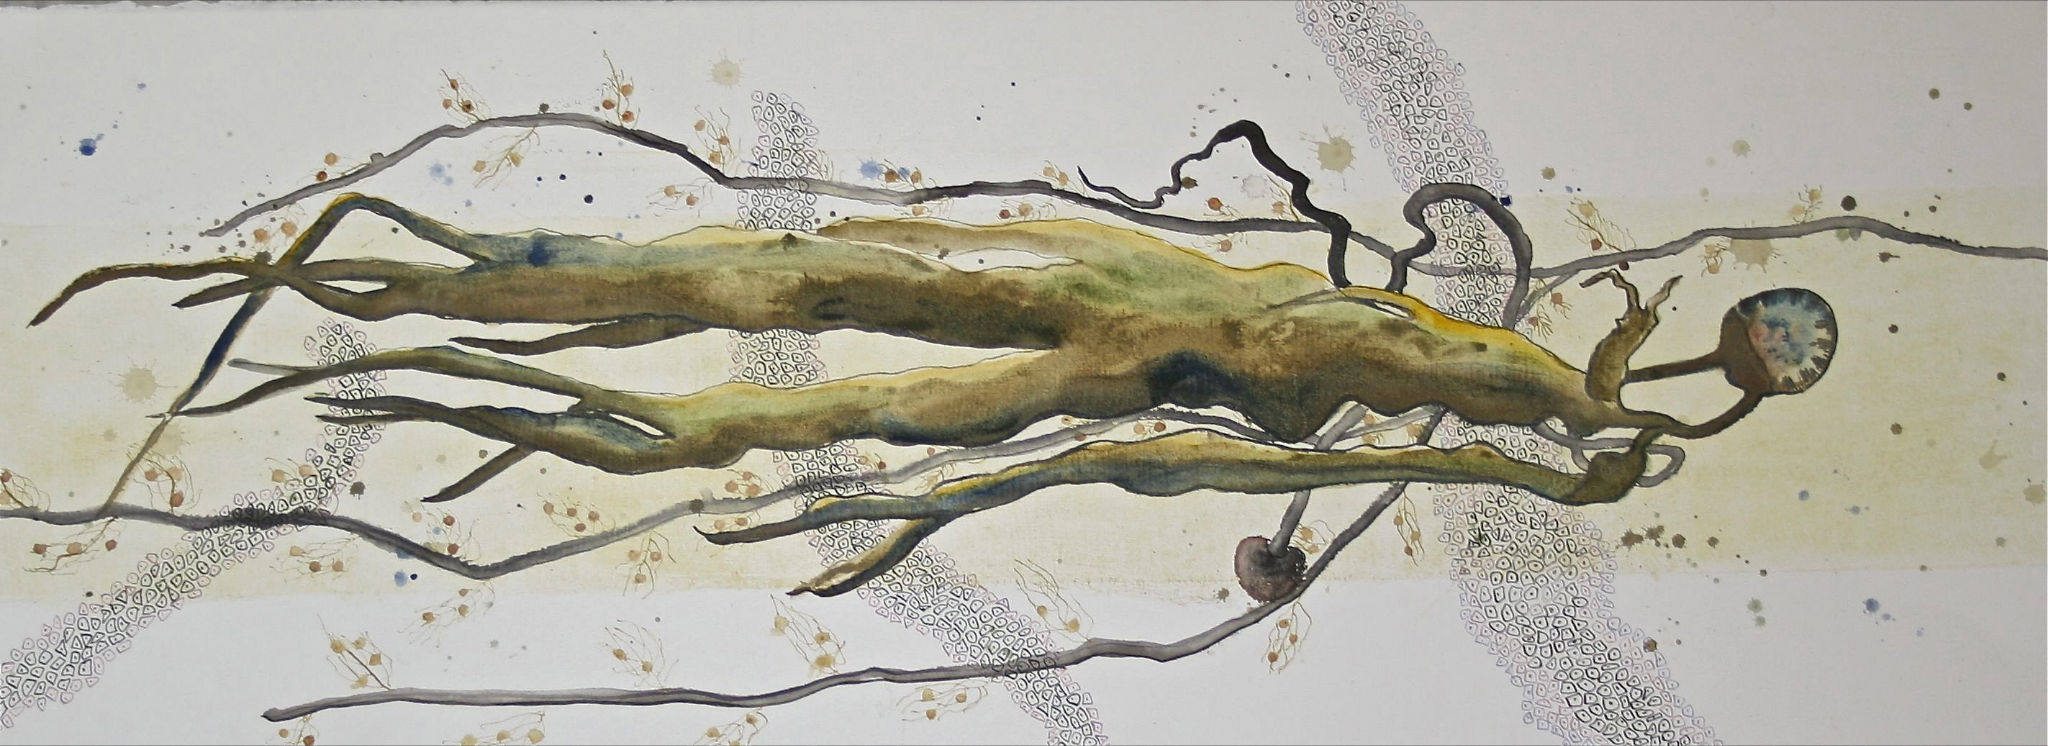 FRAGILITY Illuminating the subtle depths 2012 collograph pen ink and watercolour 28x76